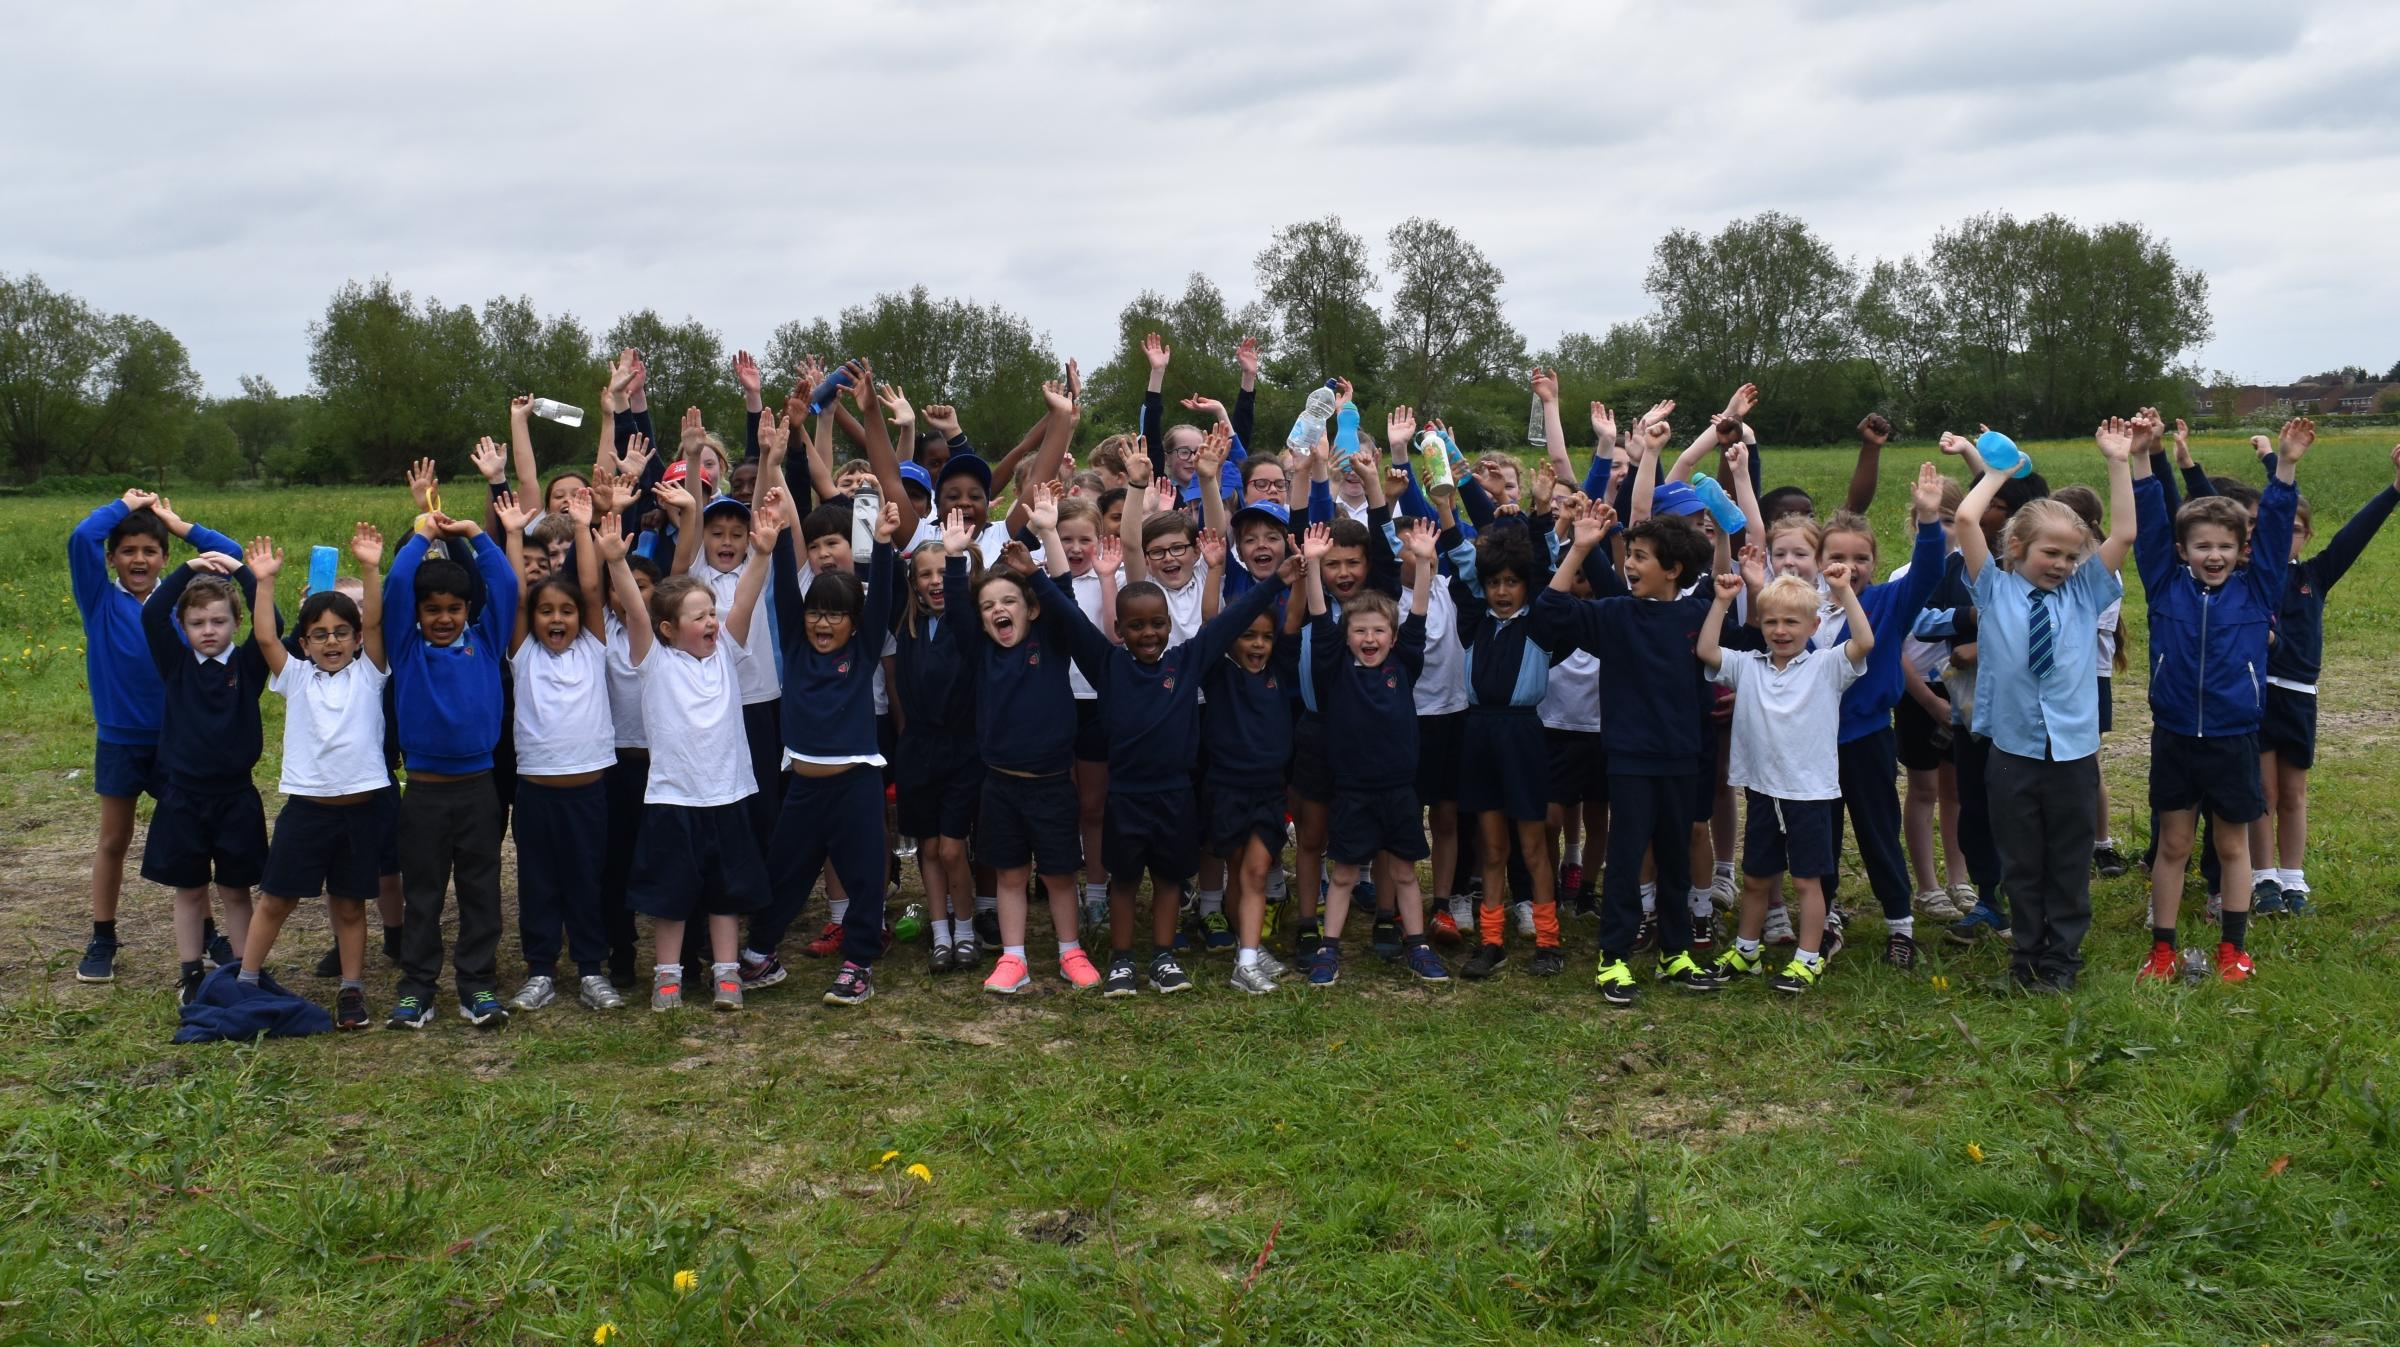 Meadowpark Raises Fund for NSPCC